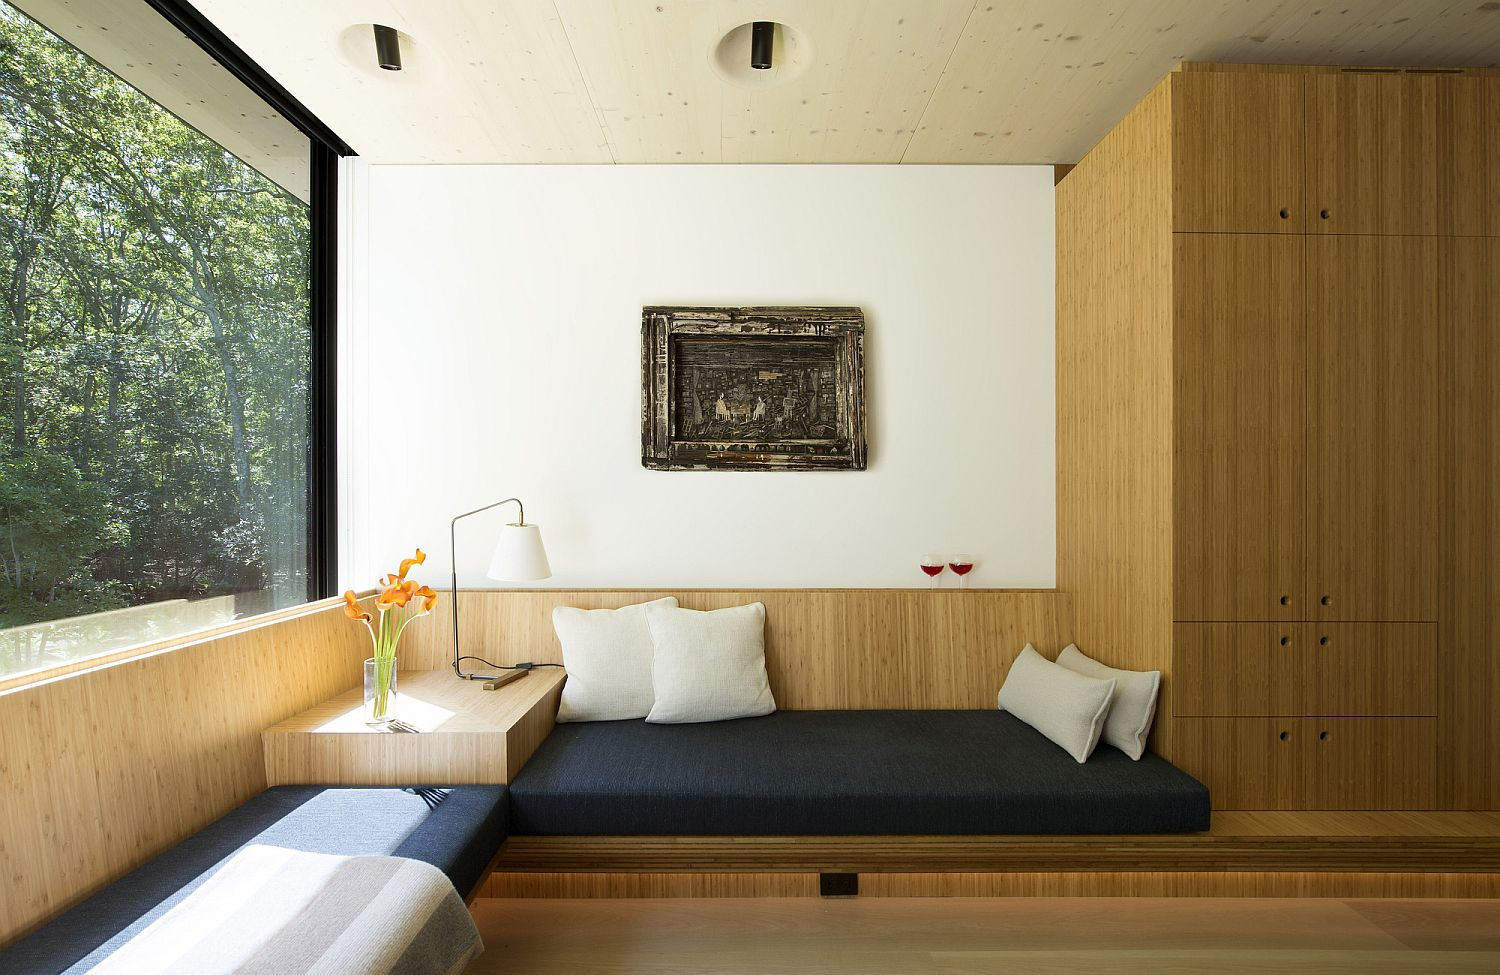 Bamboo plywood shelves and decor inside the house